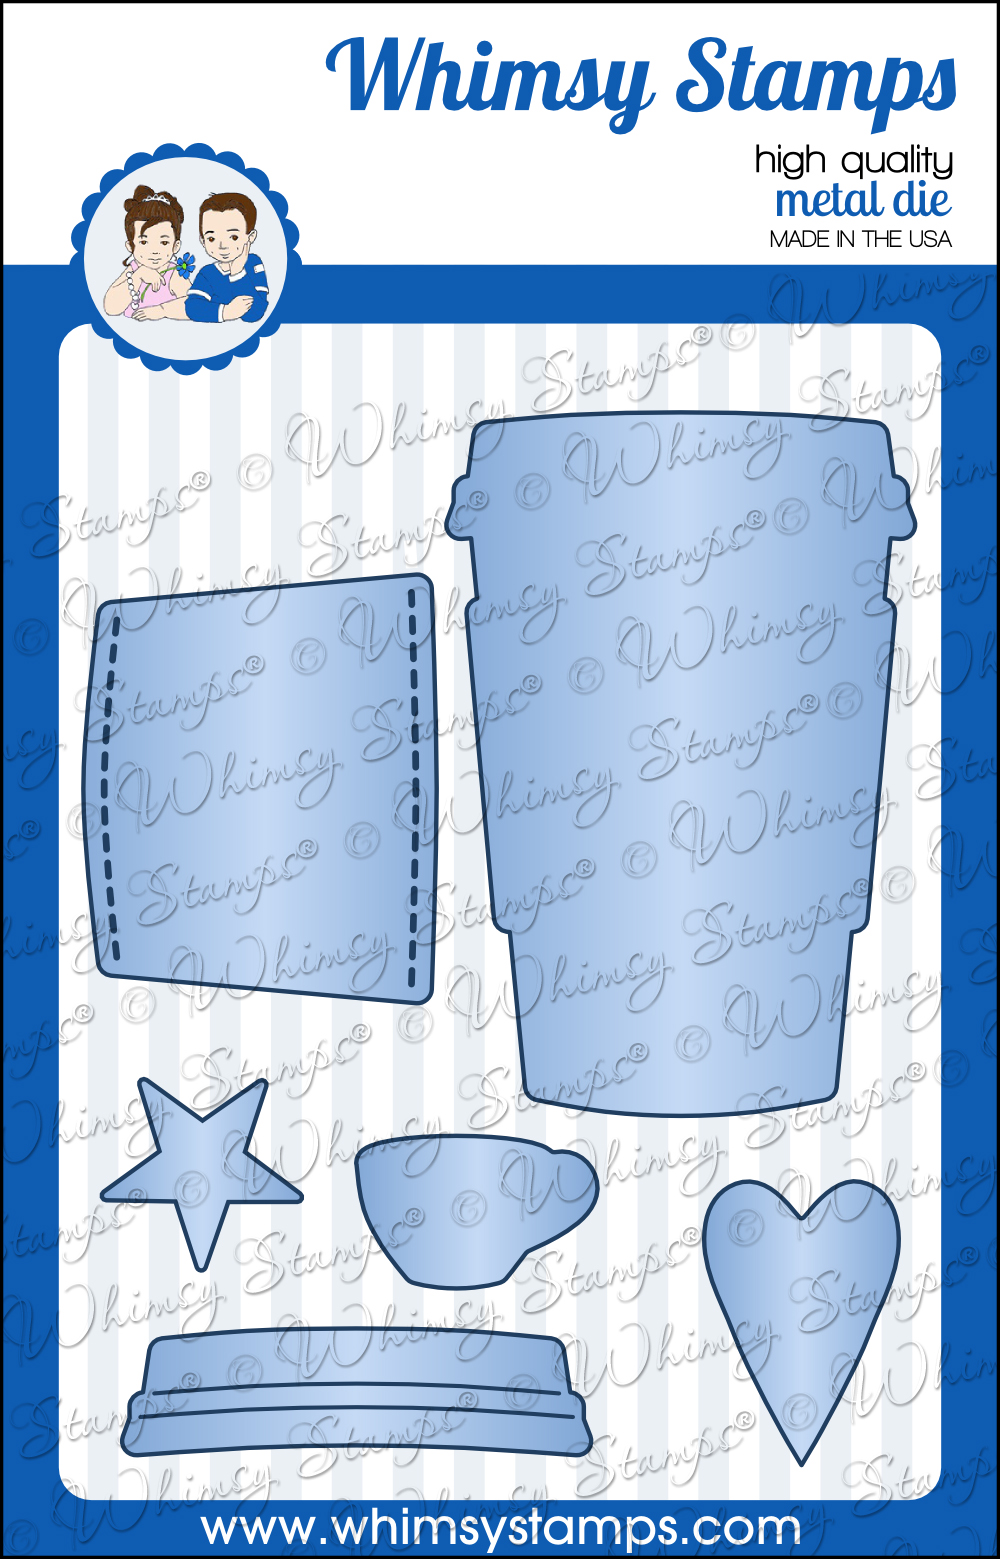 http://www.whimsystamps.com/index.php?main_page=product_info&cPath=30&products_id=3169